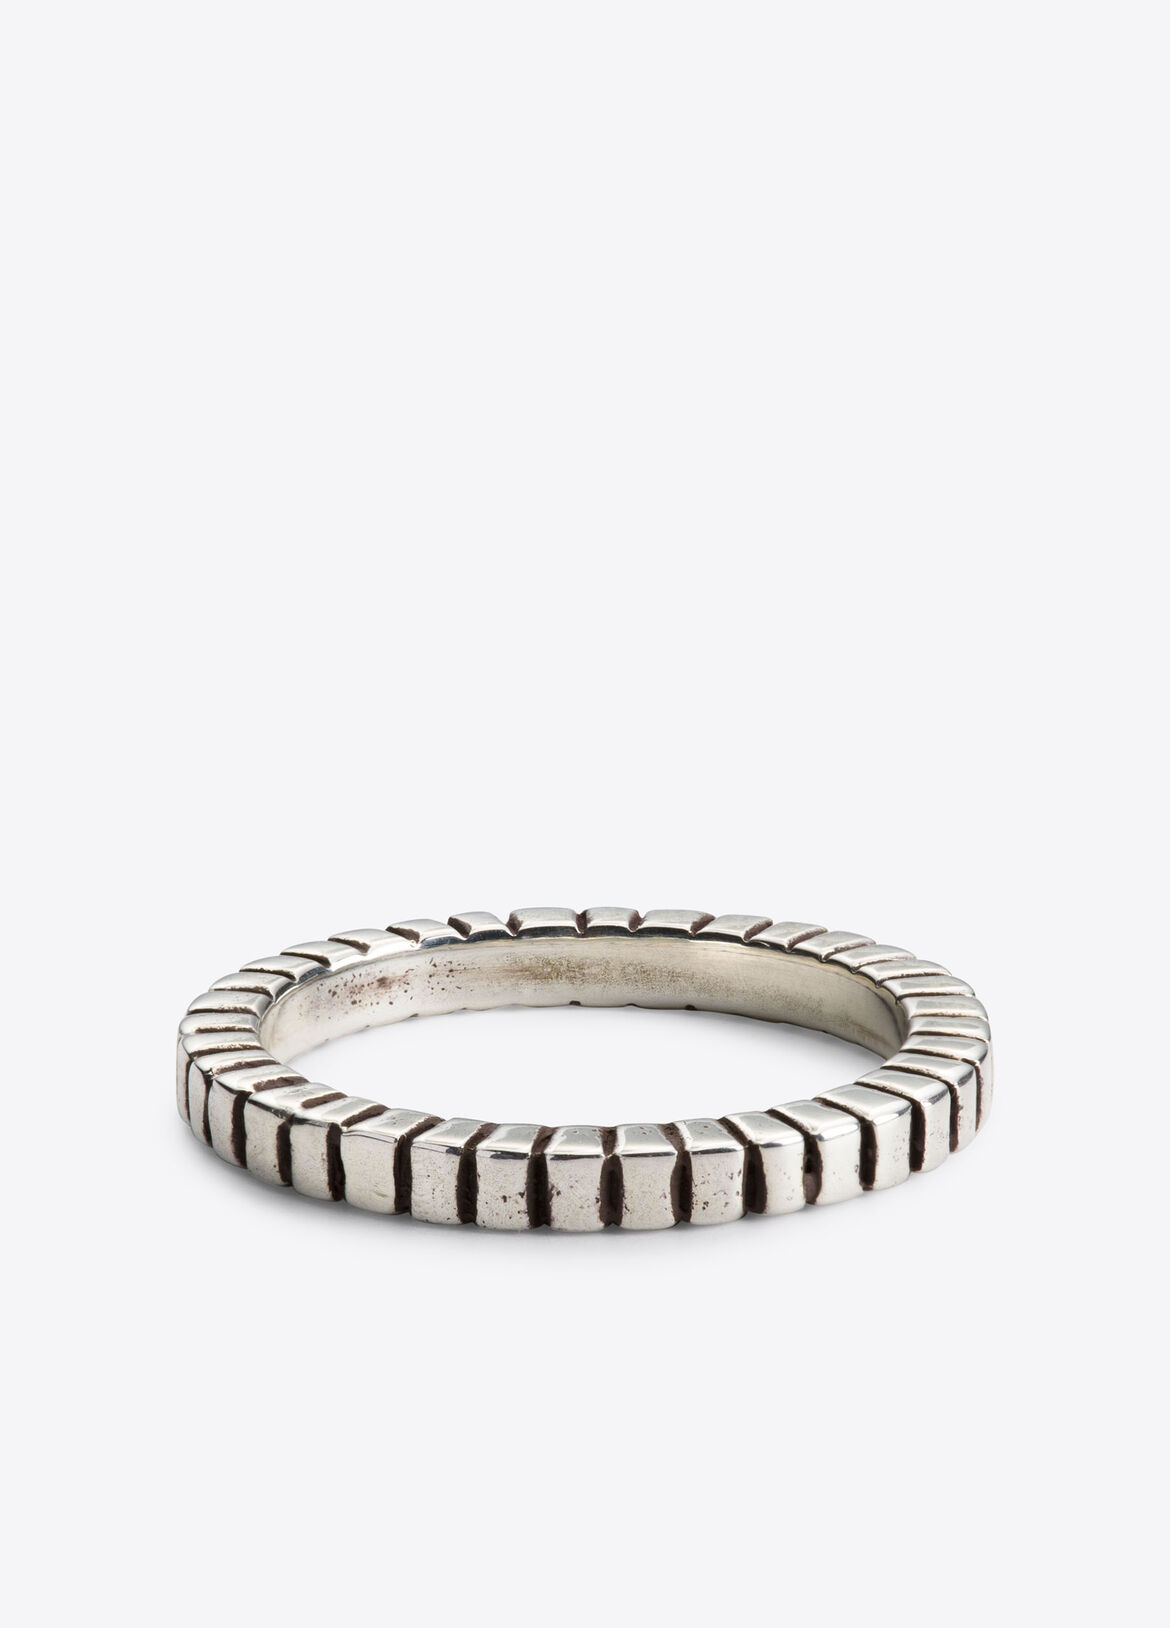 Inspired by her young life spent in both Iran and Paris, Catherine M. Zadeh's namesake New York City-based contemporary jewelry line is a highly considered collection founded on understatement and simplicity. Each sculptural shape seeks to inspire thought, while adding refinement and elegance to the wearer's aesthetic. Ribbed sterling silver ring finished with some oxidation for soft contrast.